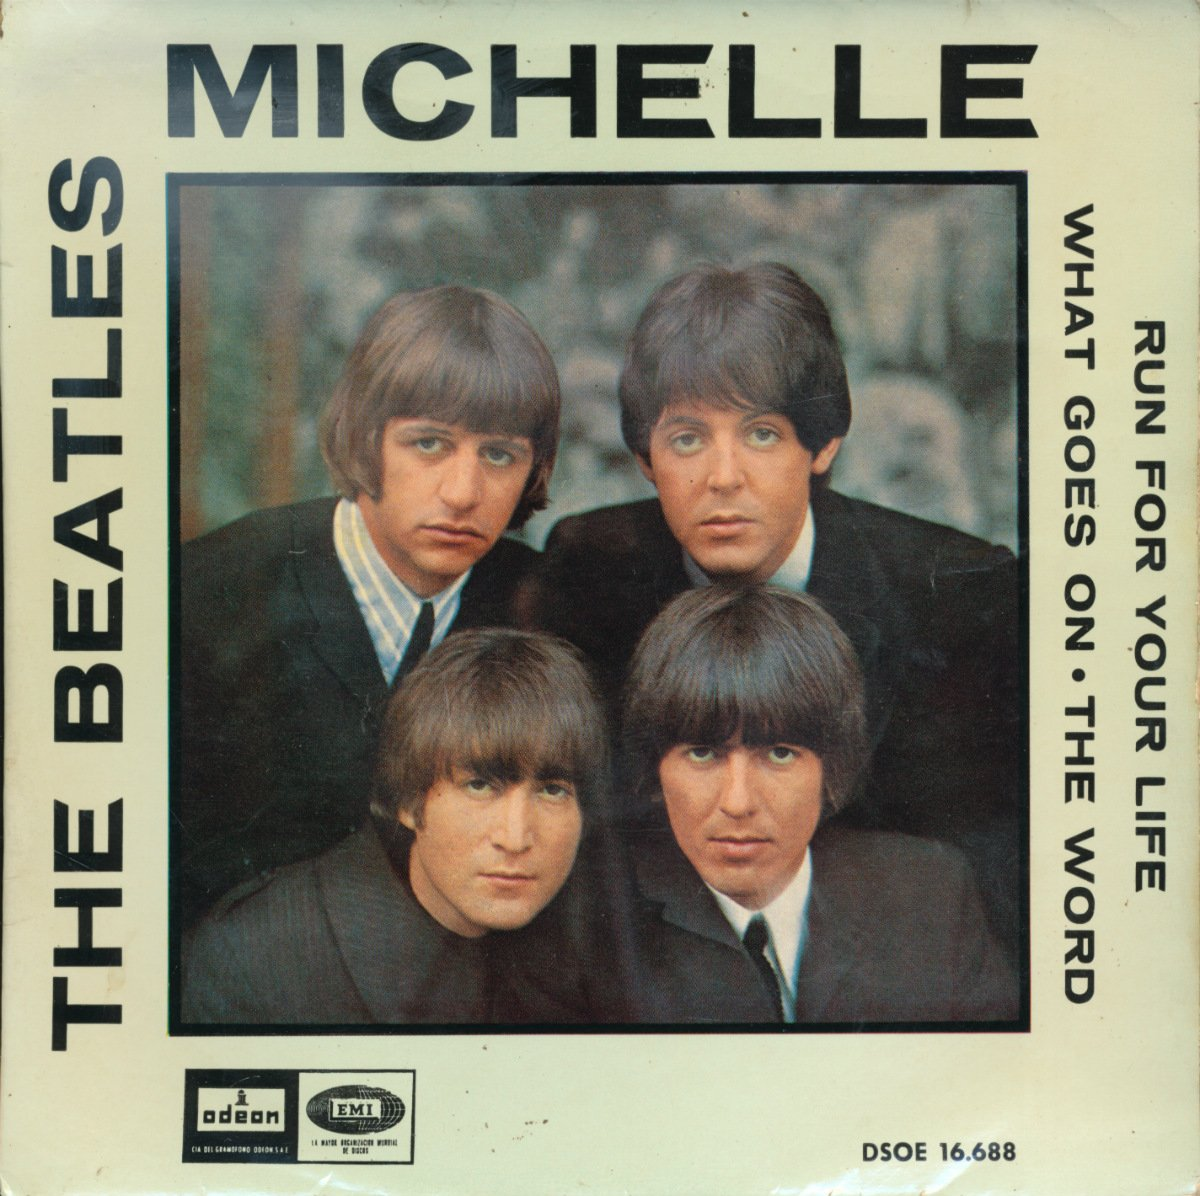 Beatles Michelle + 3 Spain Import Ep With Picture Sleeve Odeon Original -  Amazon.com Music